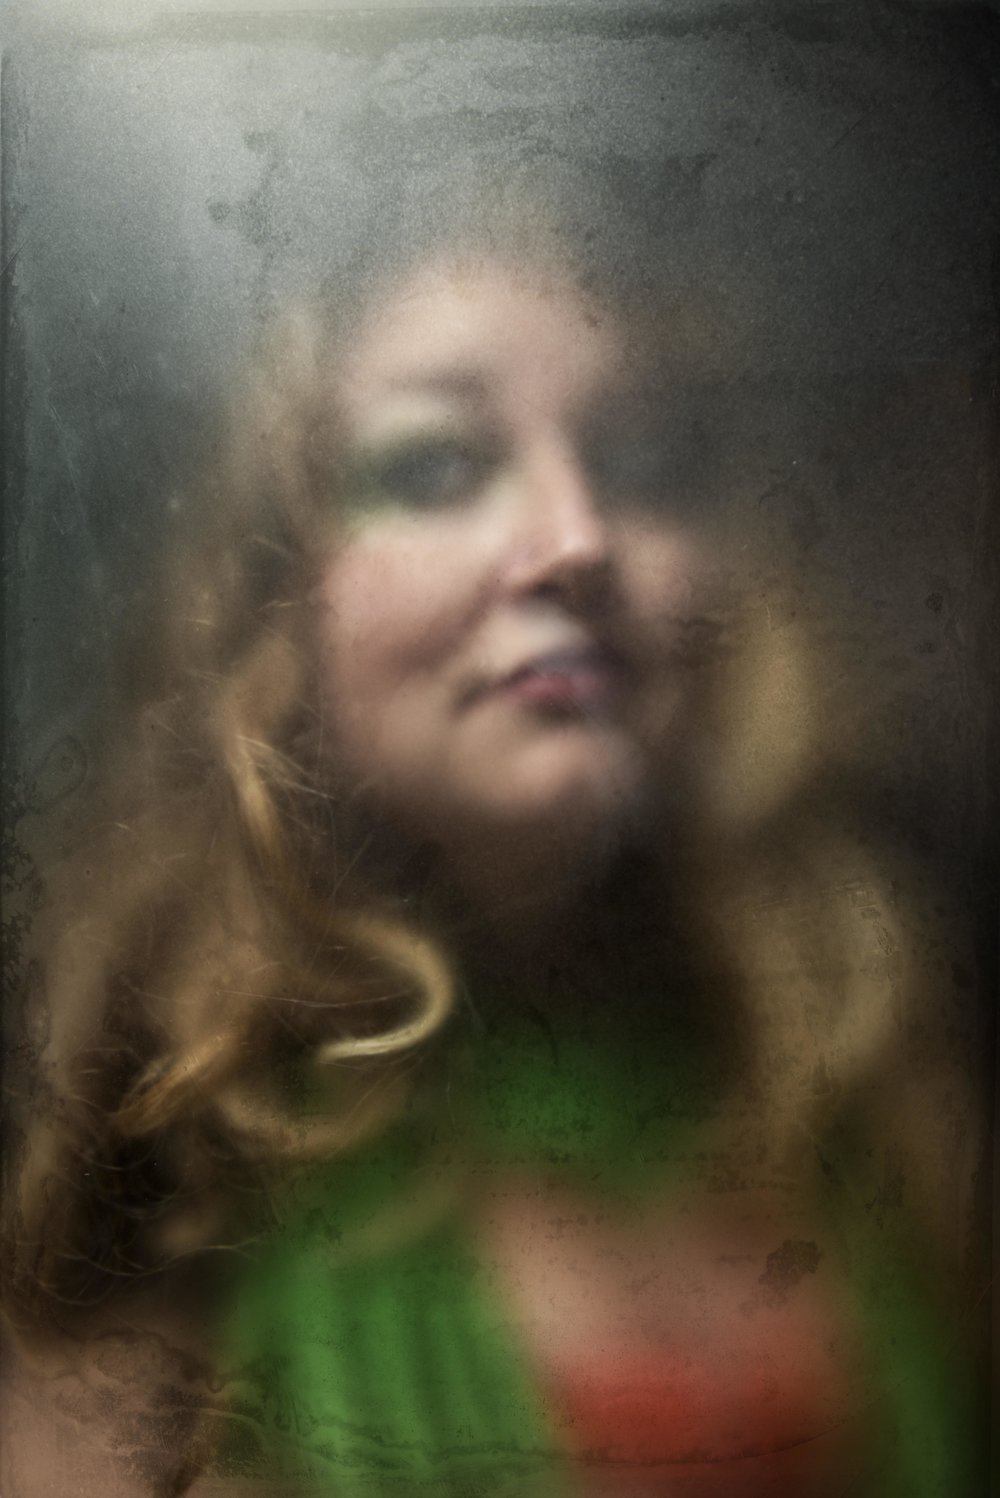 austin-trigg-halloween-spooky-portraits-pumpkin-lighting-project-personal-scary-makeup-costume-old-fashion-style-fog-glass.jpg